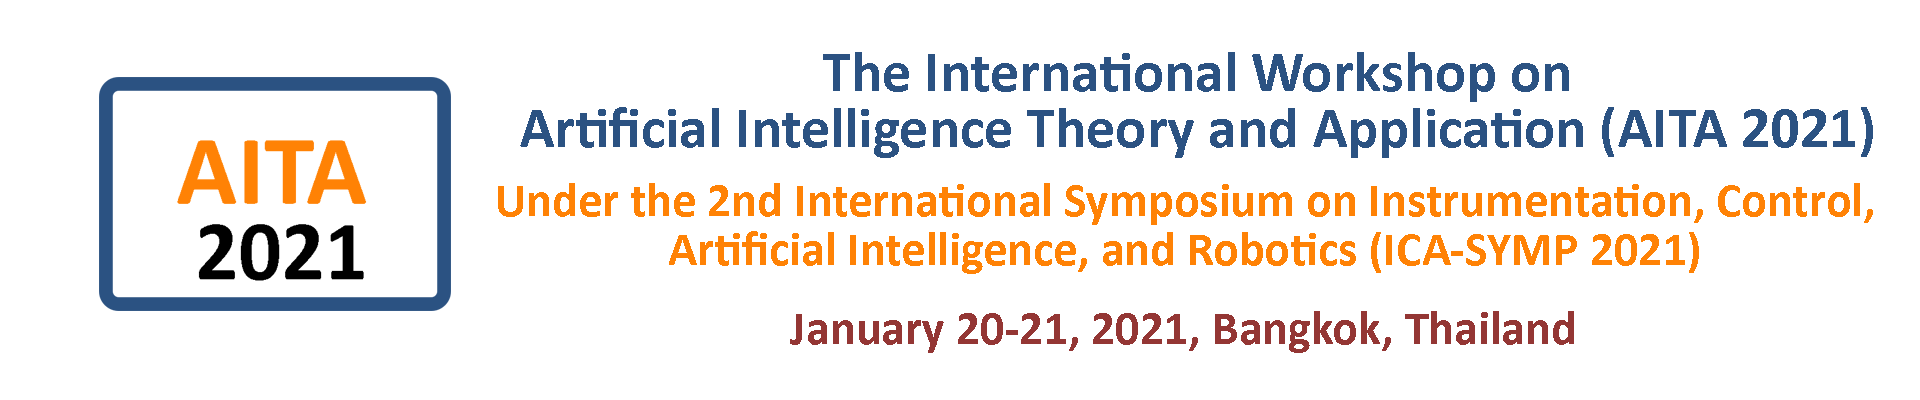 The International Workshop on Artificial Intelligence Theory and Application (AITA 2021)